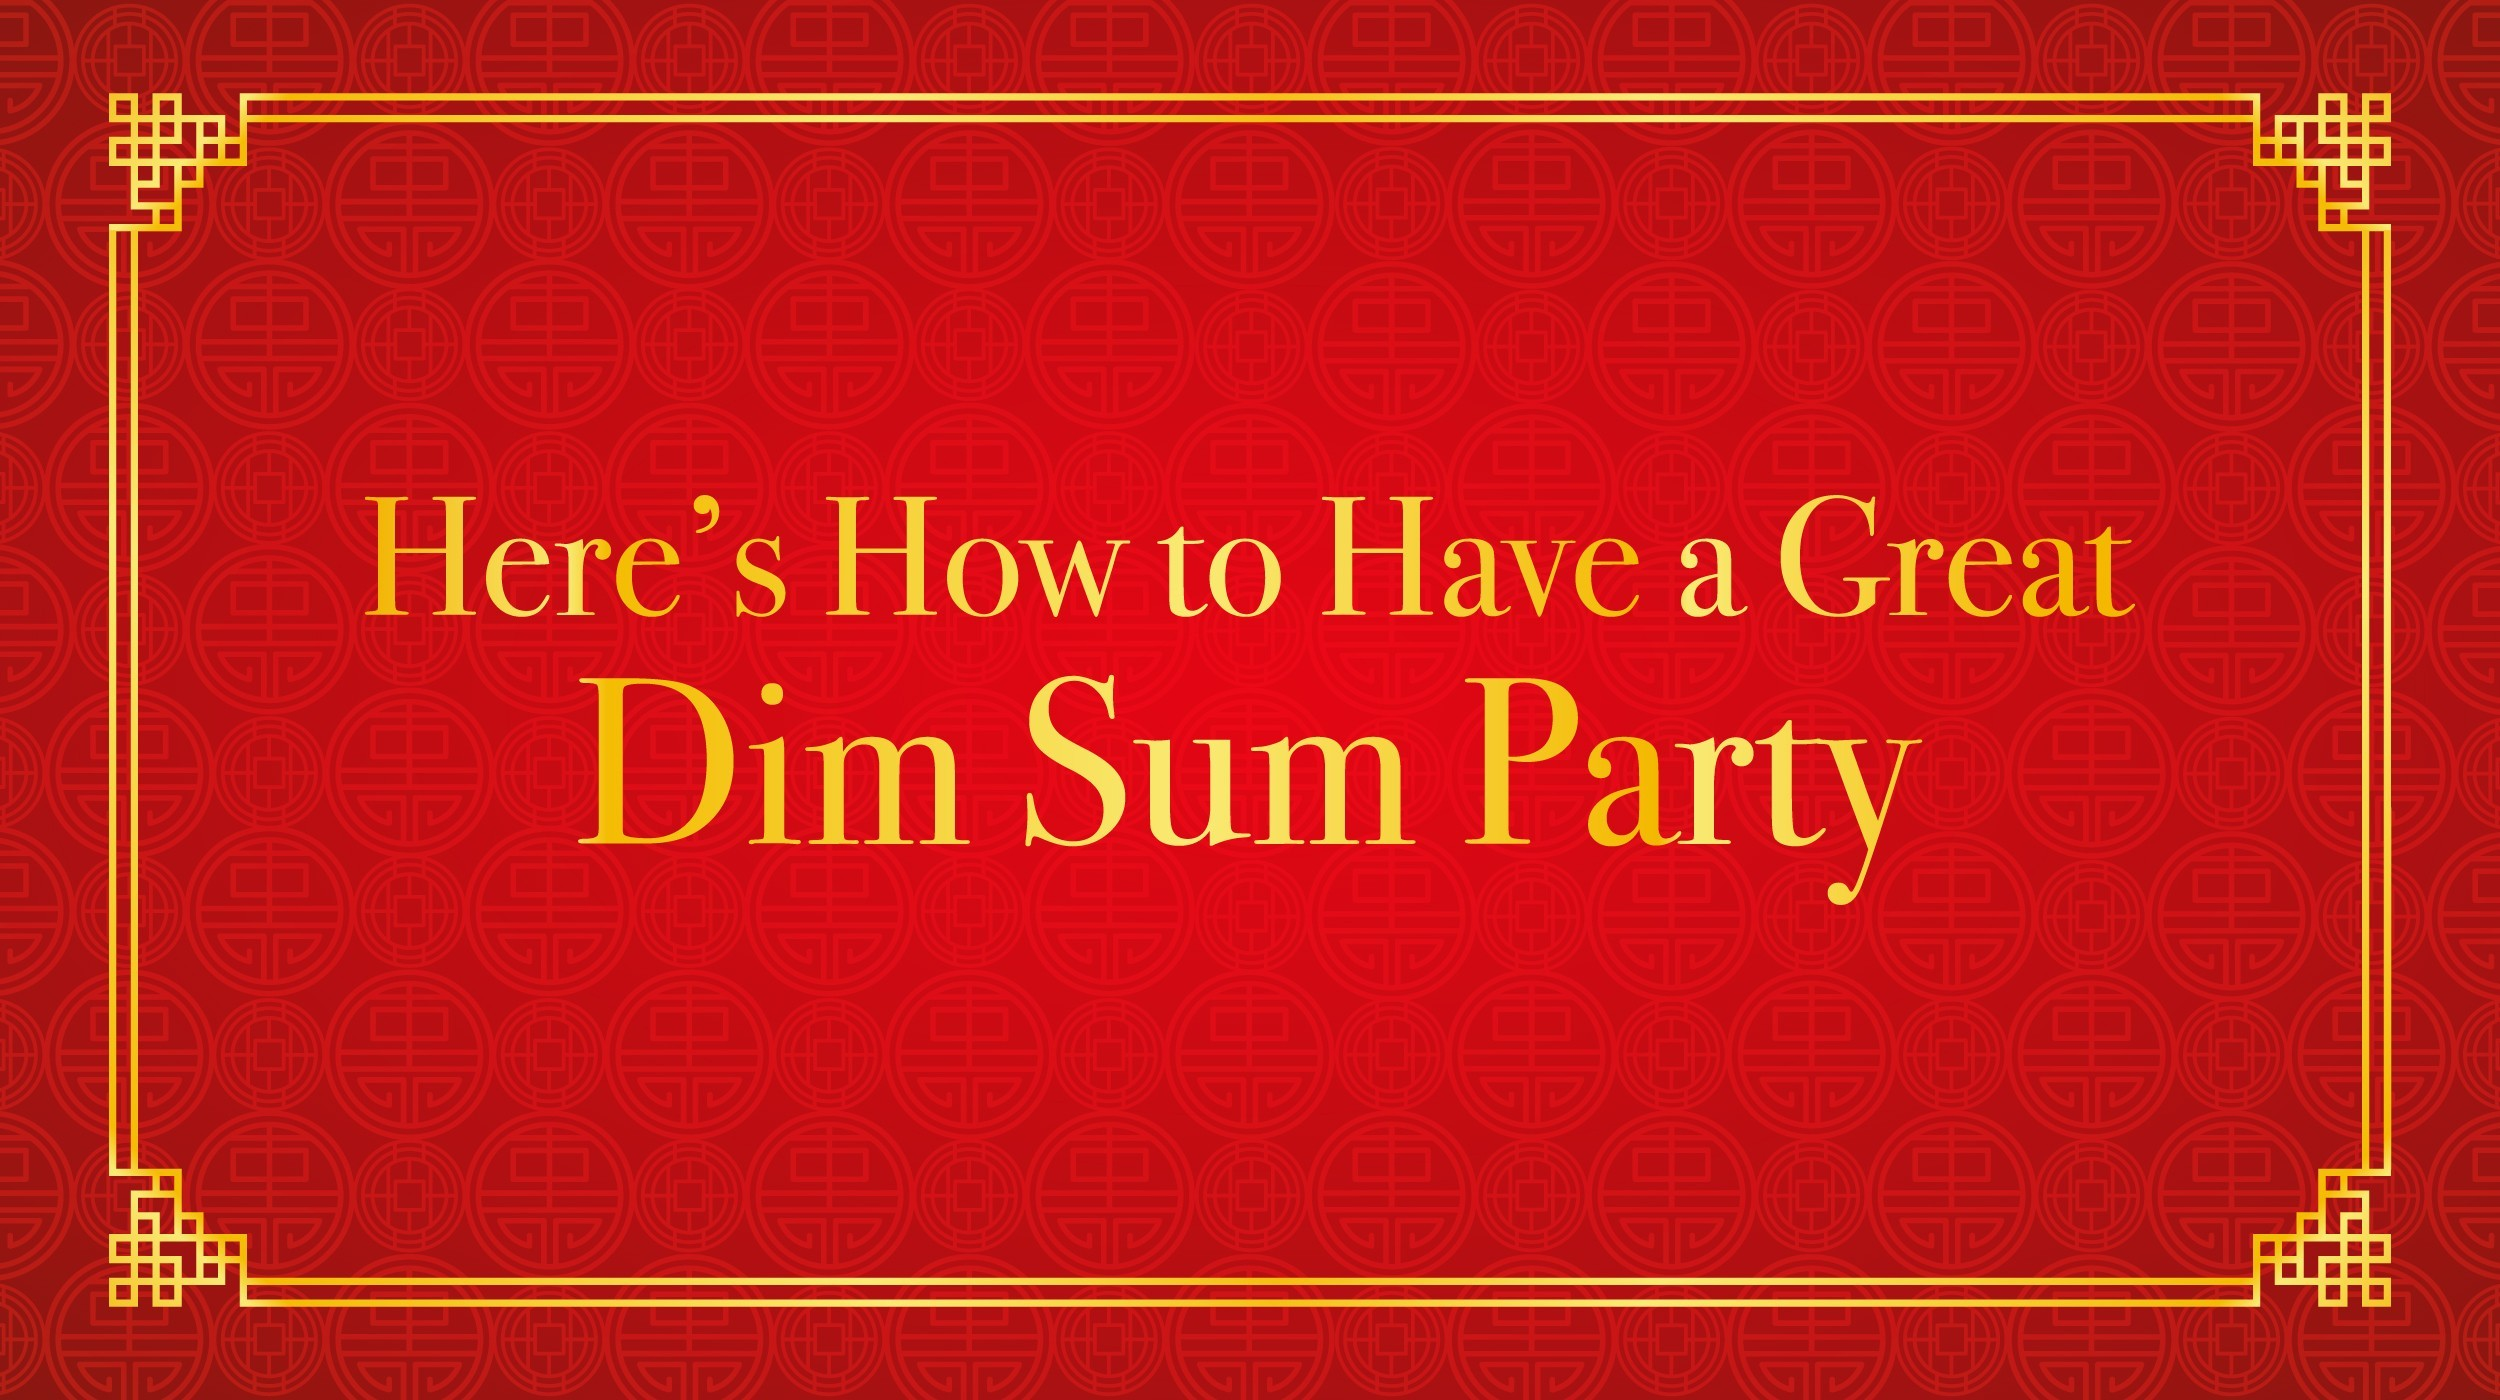 Here's How to Have a Great Dim Sum Party